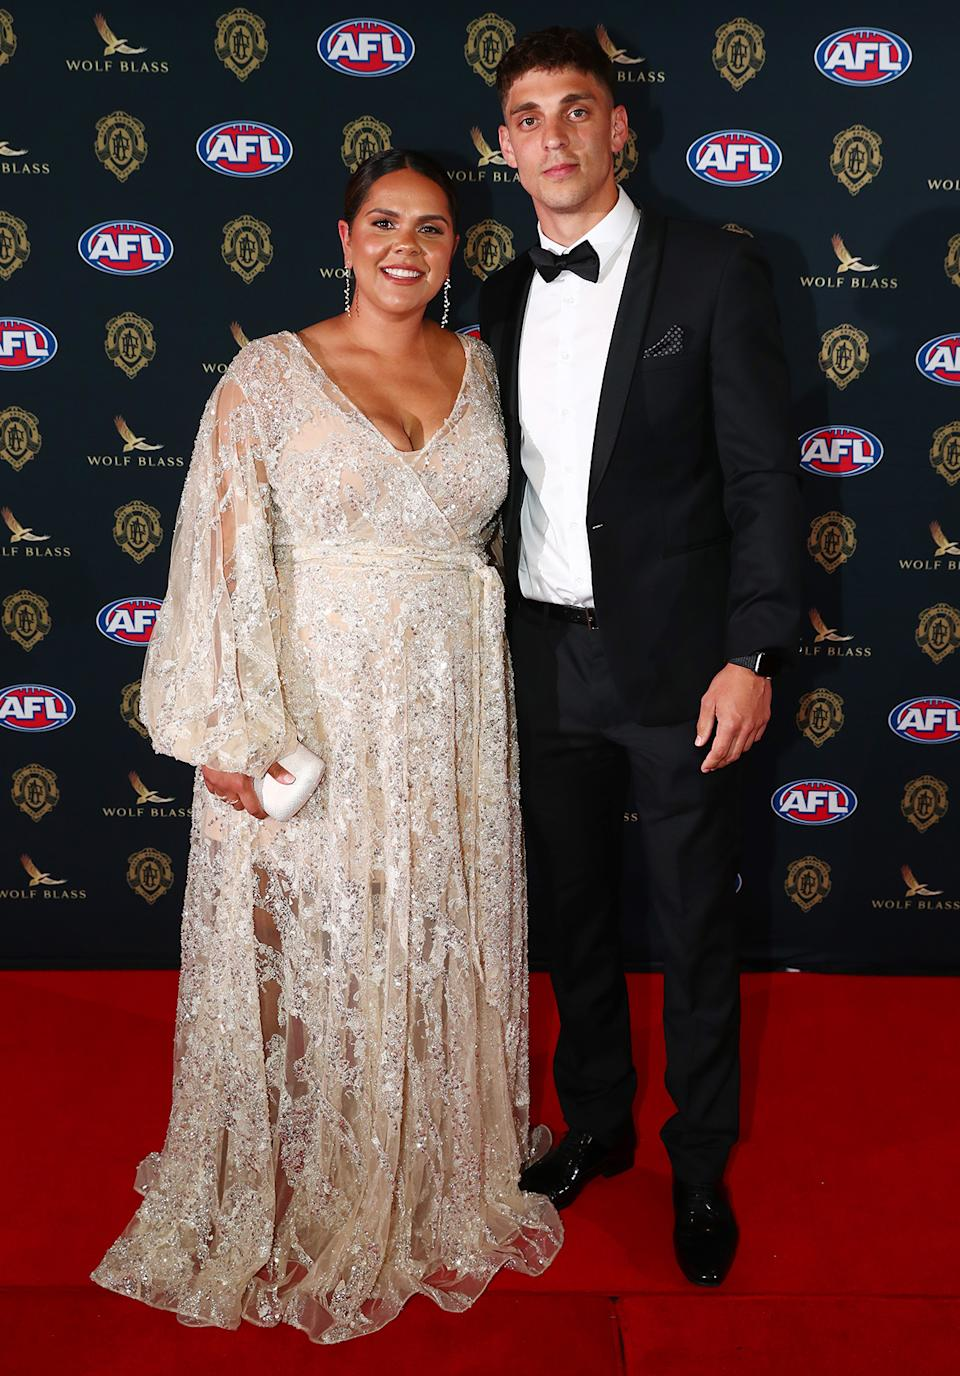 Sean Lemmens and Trischaye Newchurch at the Brownlow Medal 2021